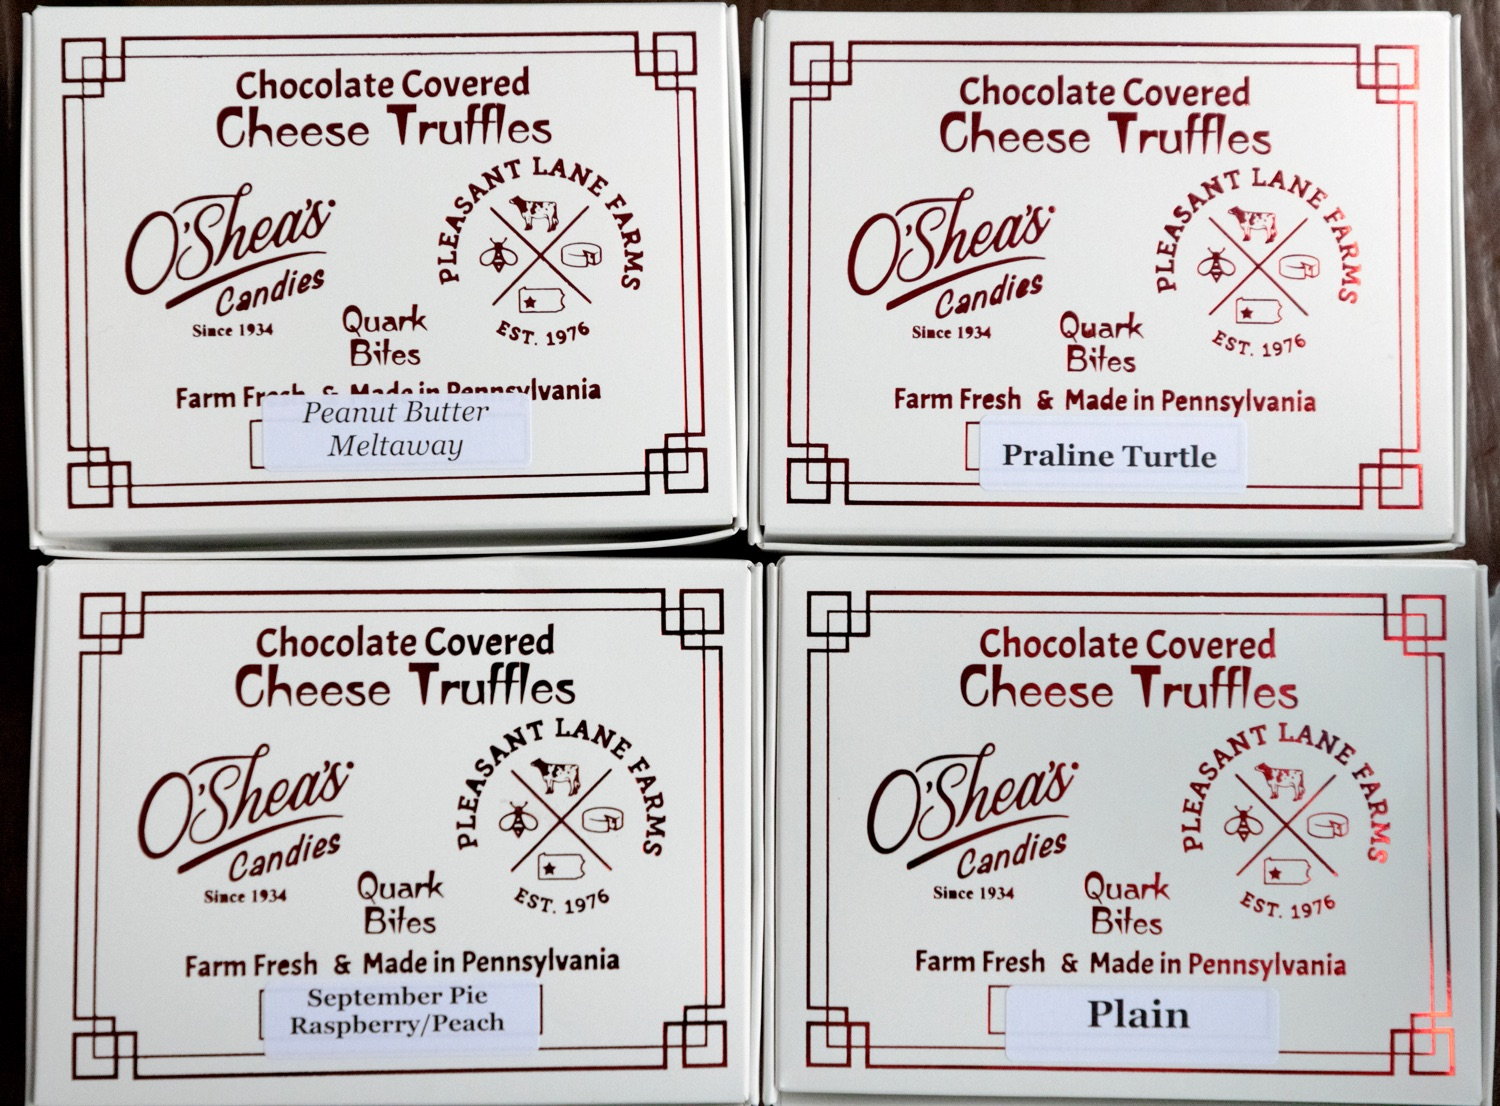 """<a href=""""https://filesource.wostreaming.net/commonwealthofpa/photo/19097_AG_DairyInnovation_NK_017.jpg"""" target=""""_blank"""">⇣Download Photo<br></a>Pleasant Lane Farms chocolate covered cheese truffles are pictured in Latrobe on Thursday, September 9, 2021. In 2019, Pleasant Lane Farms reconstructed their operation and on-farm business plan to safeguard the farms future for the next generation. The Frye family constructed a new barn equipped with a robotic milker, atmospheric climate control to regulate barn temperature and cow brushes to promote cow comfort. The barn directly supplies the on-farm cheese processing facility, which received a $364,082 Pennsylvania Dairy Investment Program grant to support marketing and value-added processing equipment investments. Today, the creamery at Pleasant Lane Farms processes 15,000 to 25,000 pounds of milk and produces more 1,700 to 2,900 pounds of cheese each week."""